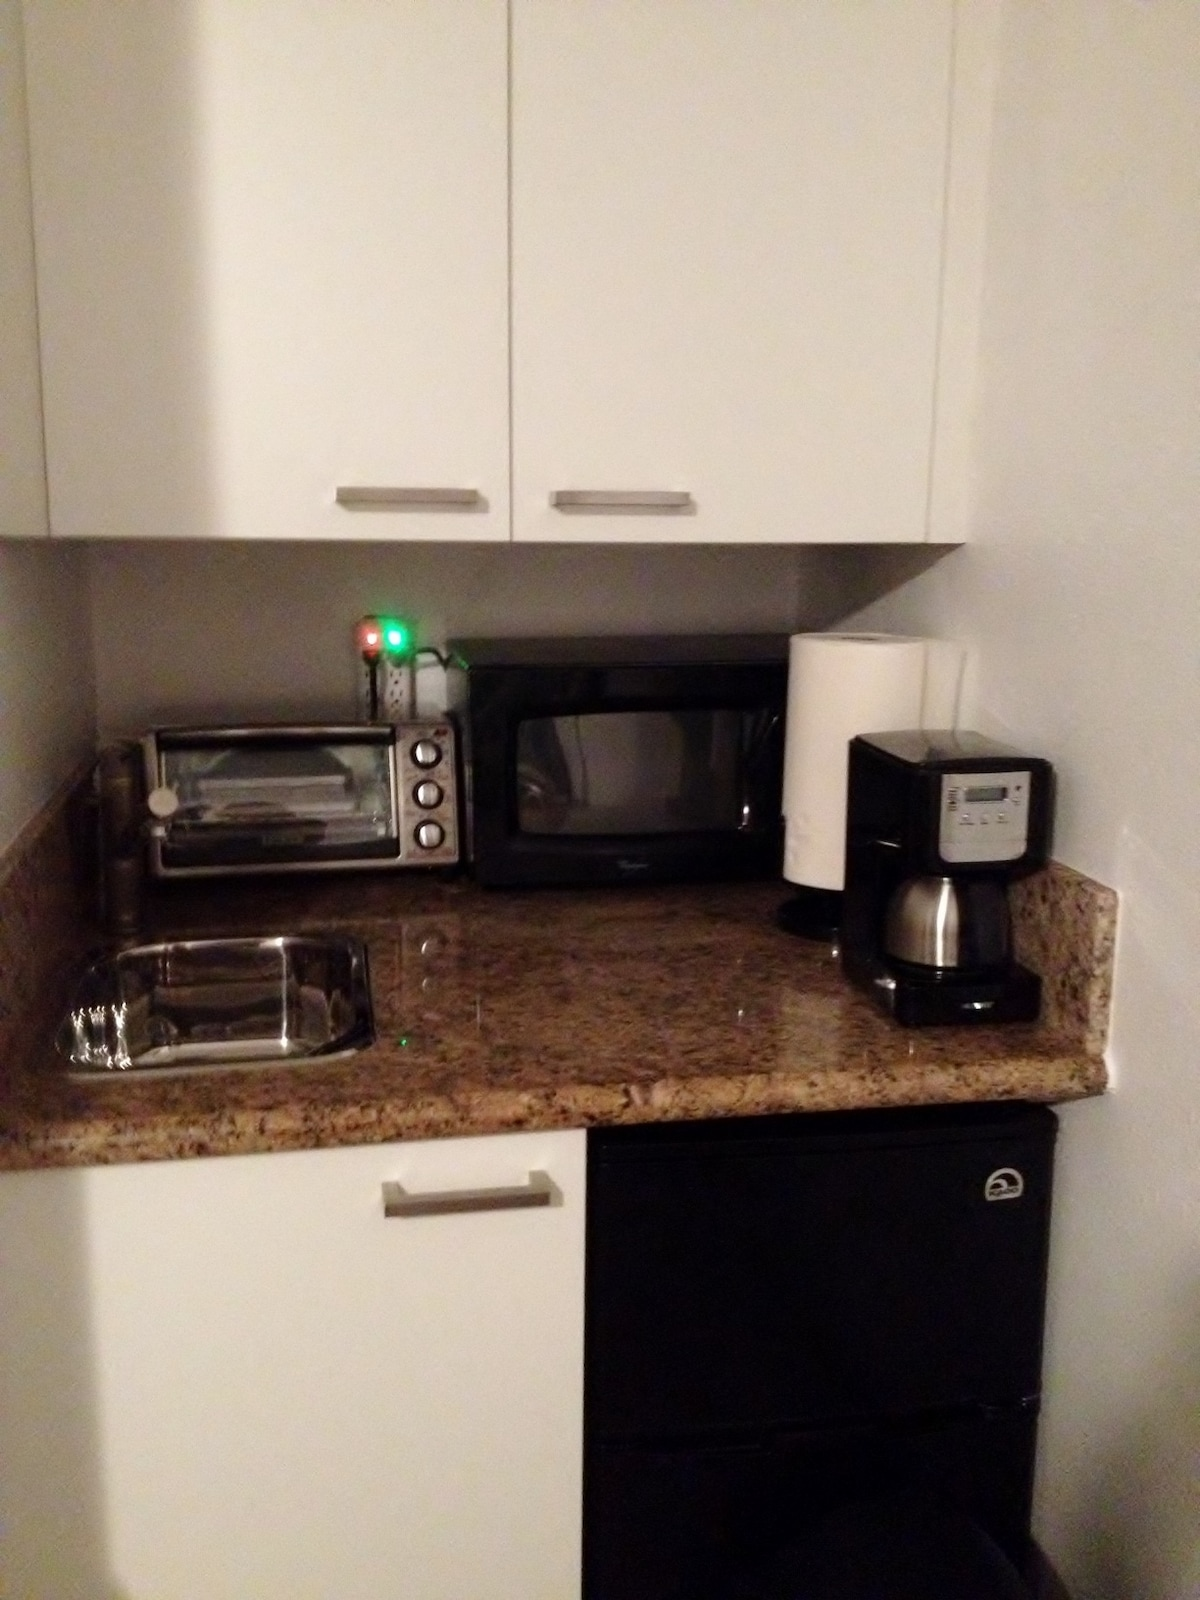 Kitchenette; Microwave, Toaster oven, Coffe pot, Induction burner